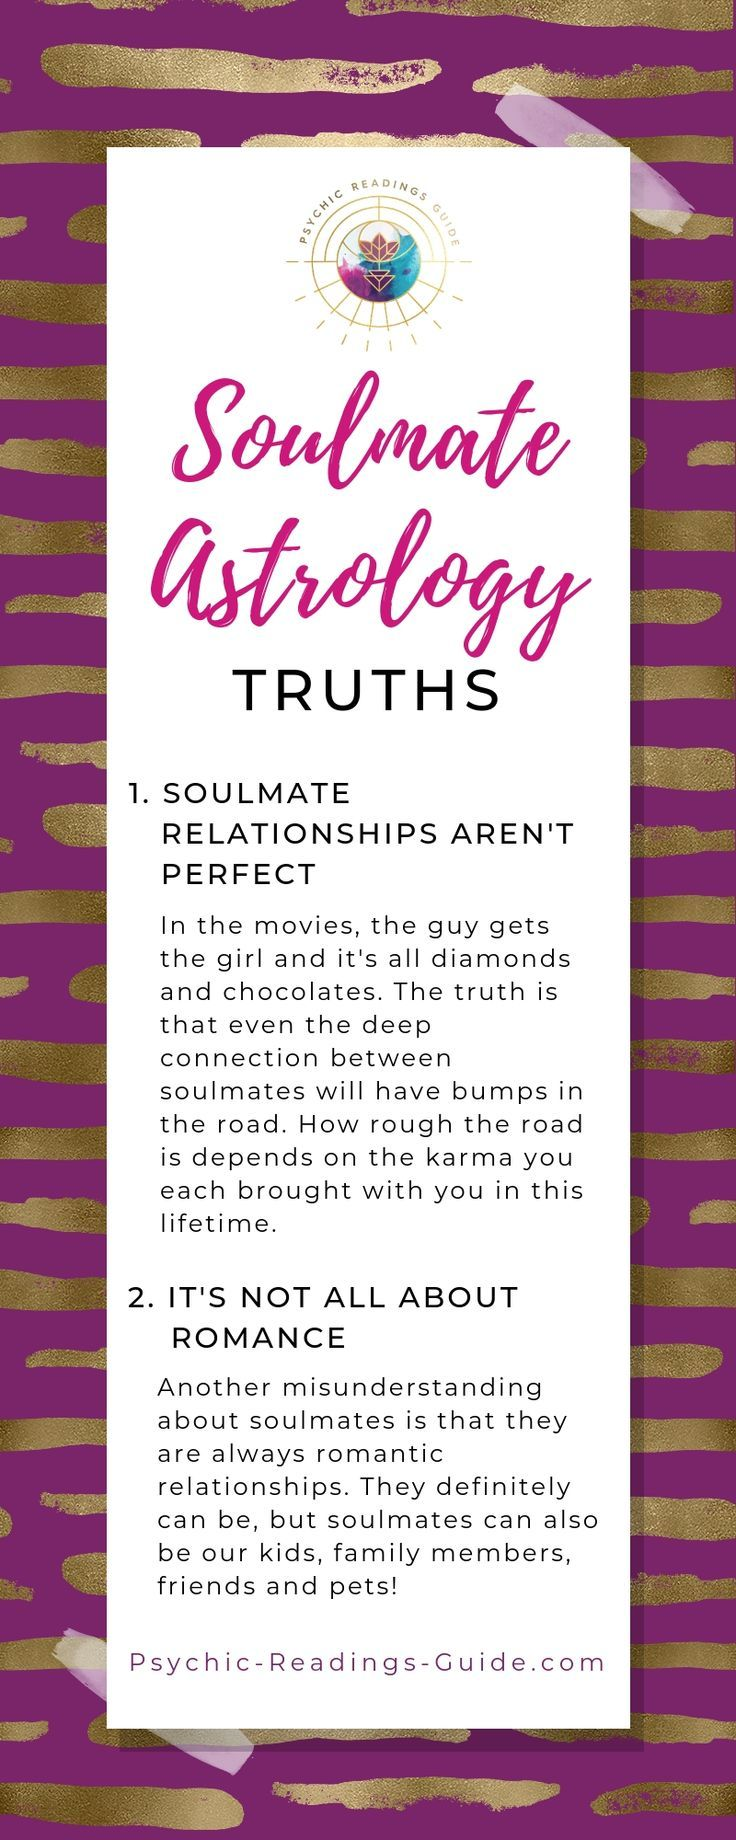 How can astrology help identify your soulmate?